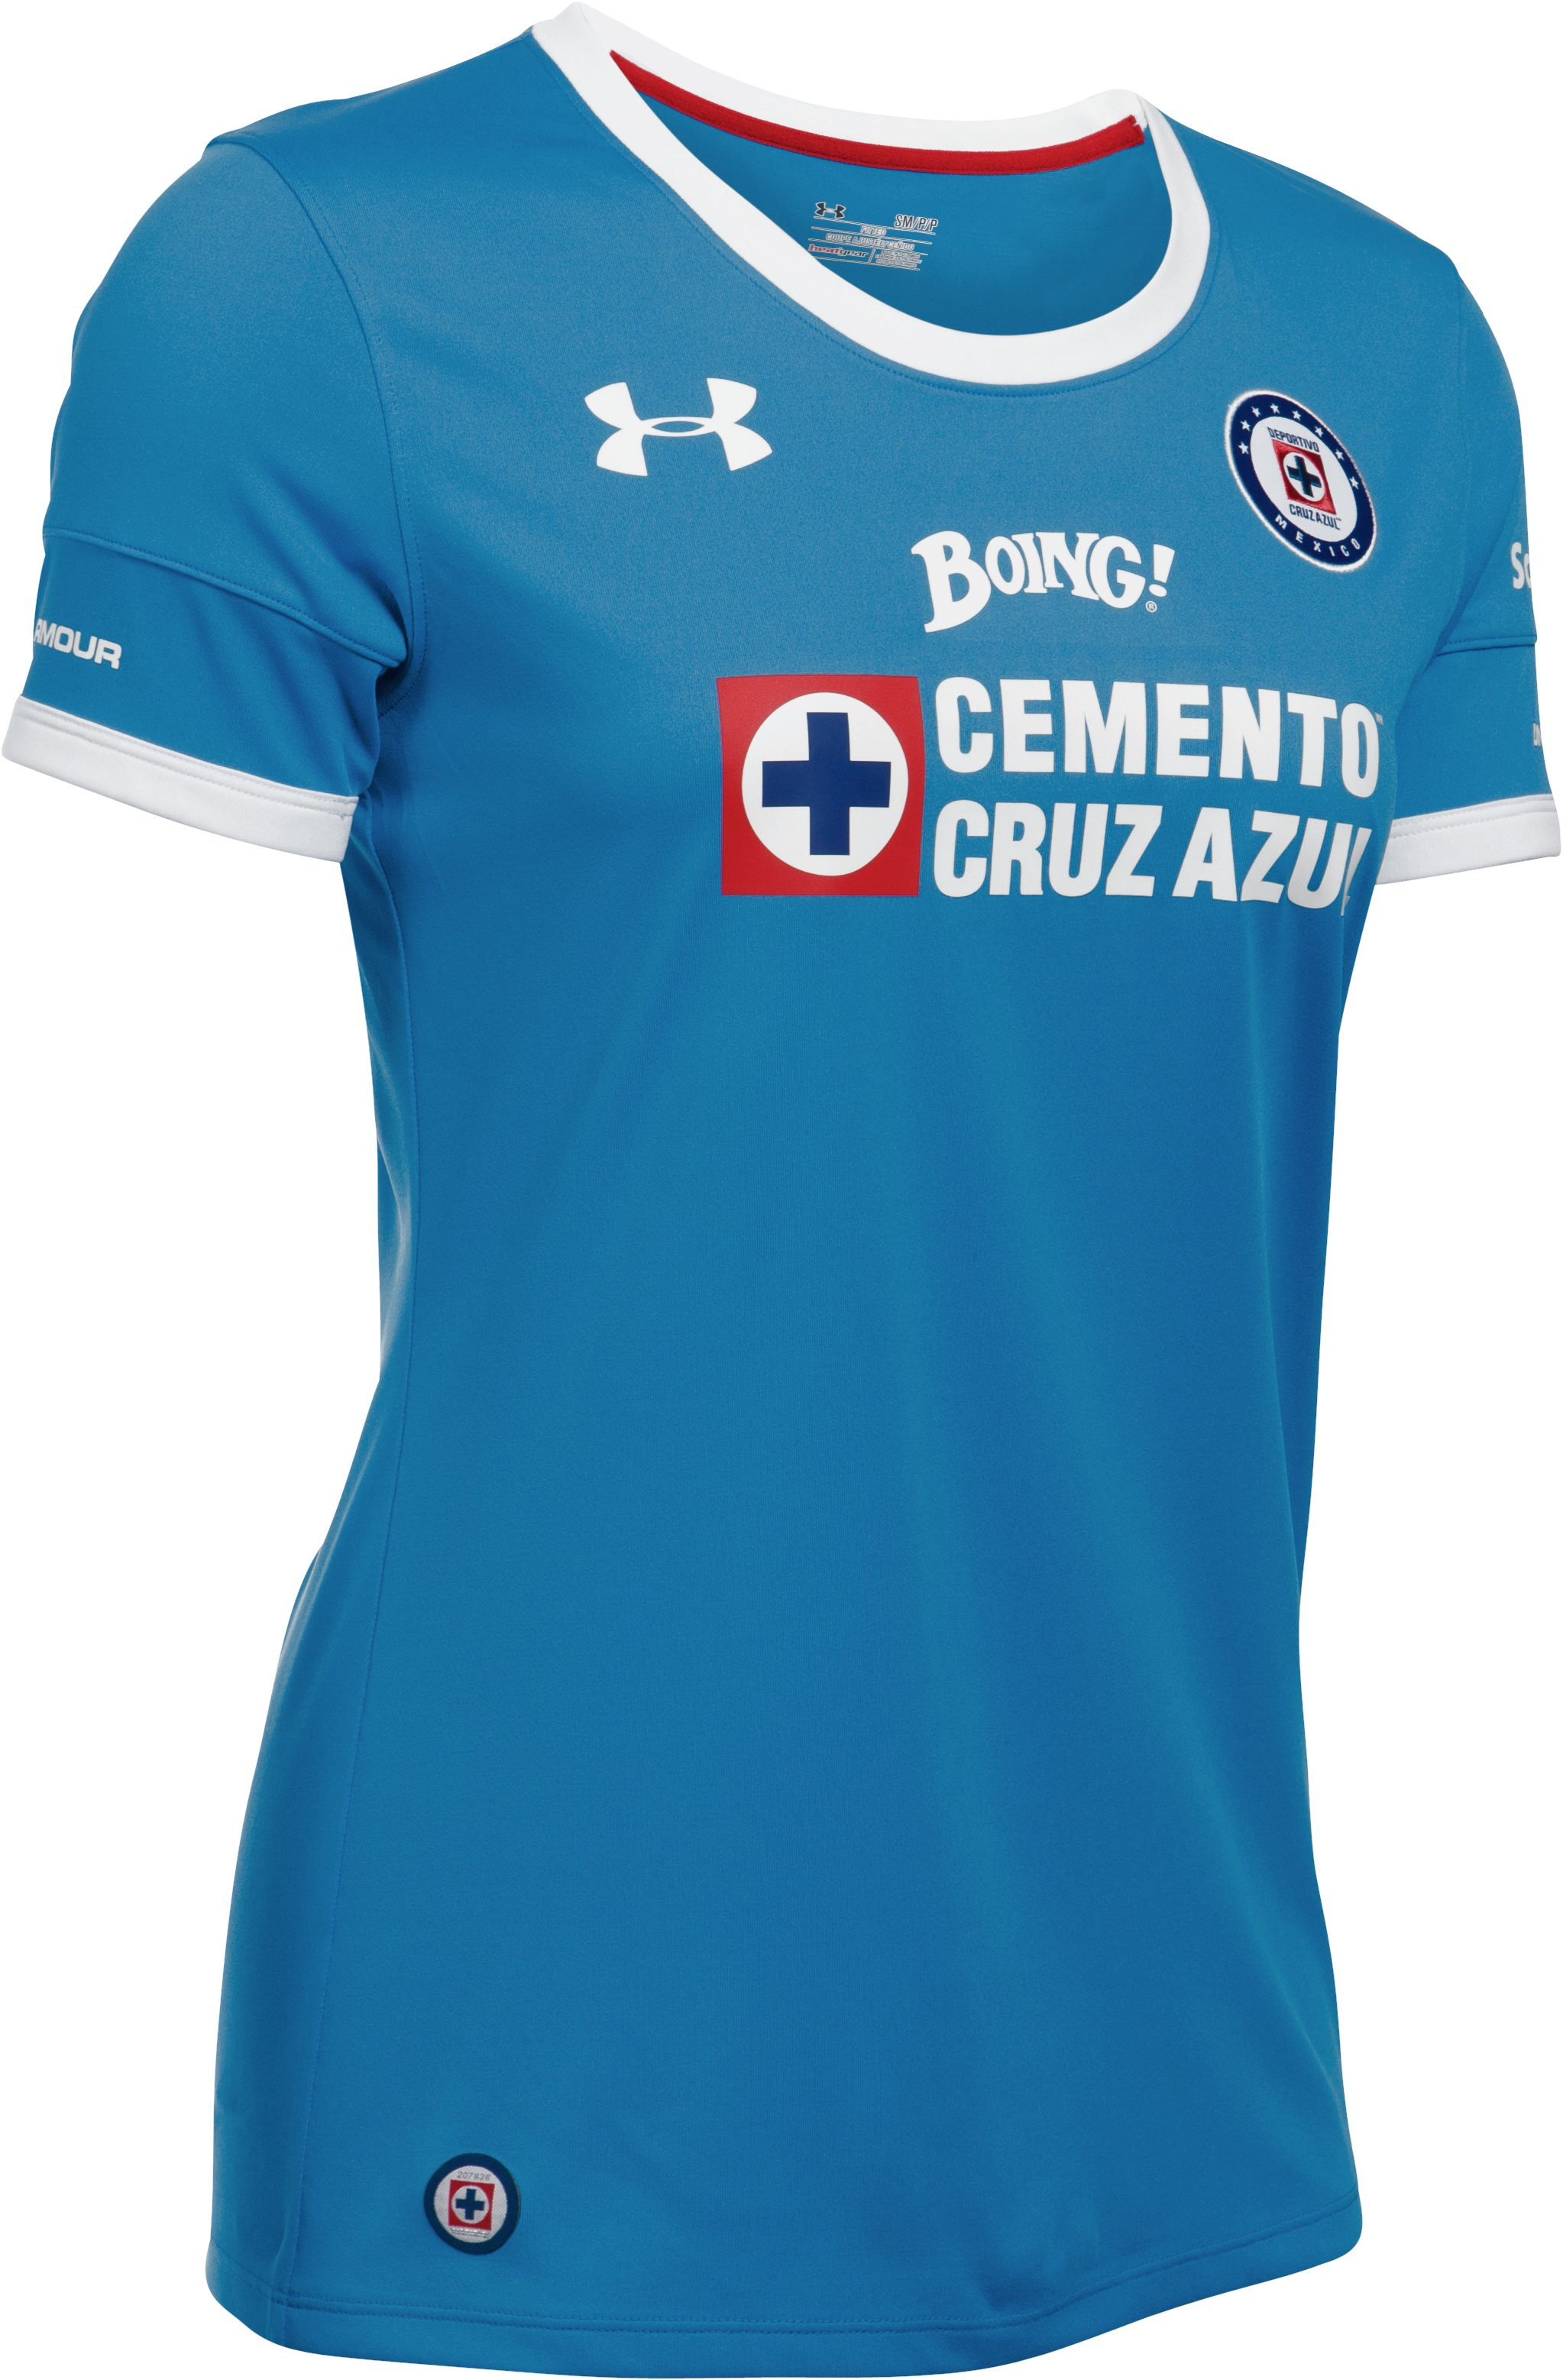 Women's Cruz Azul Third Replica Home Jersey, Blue Taro,